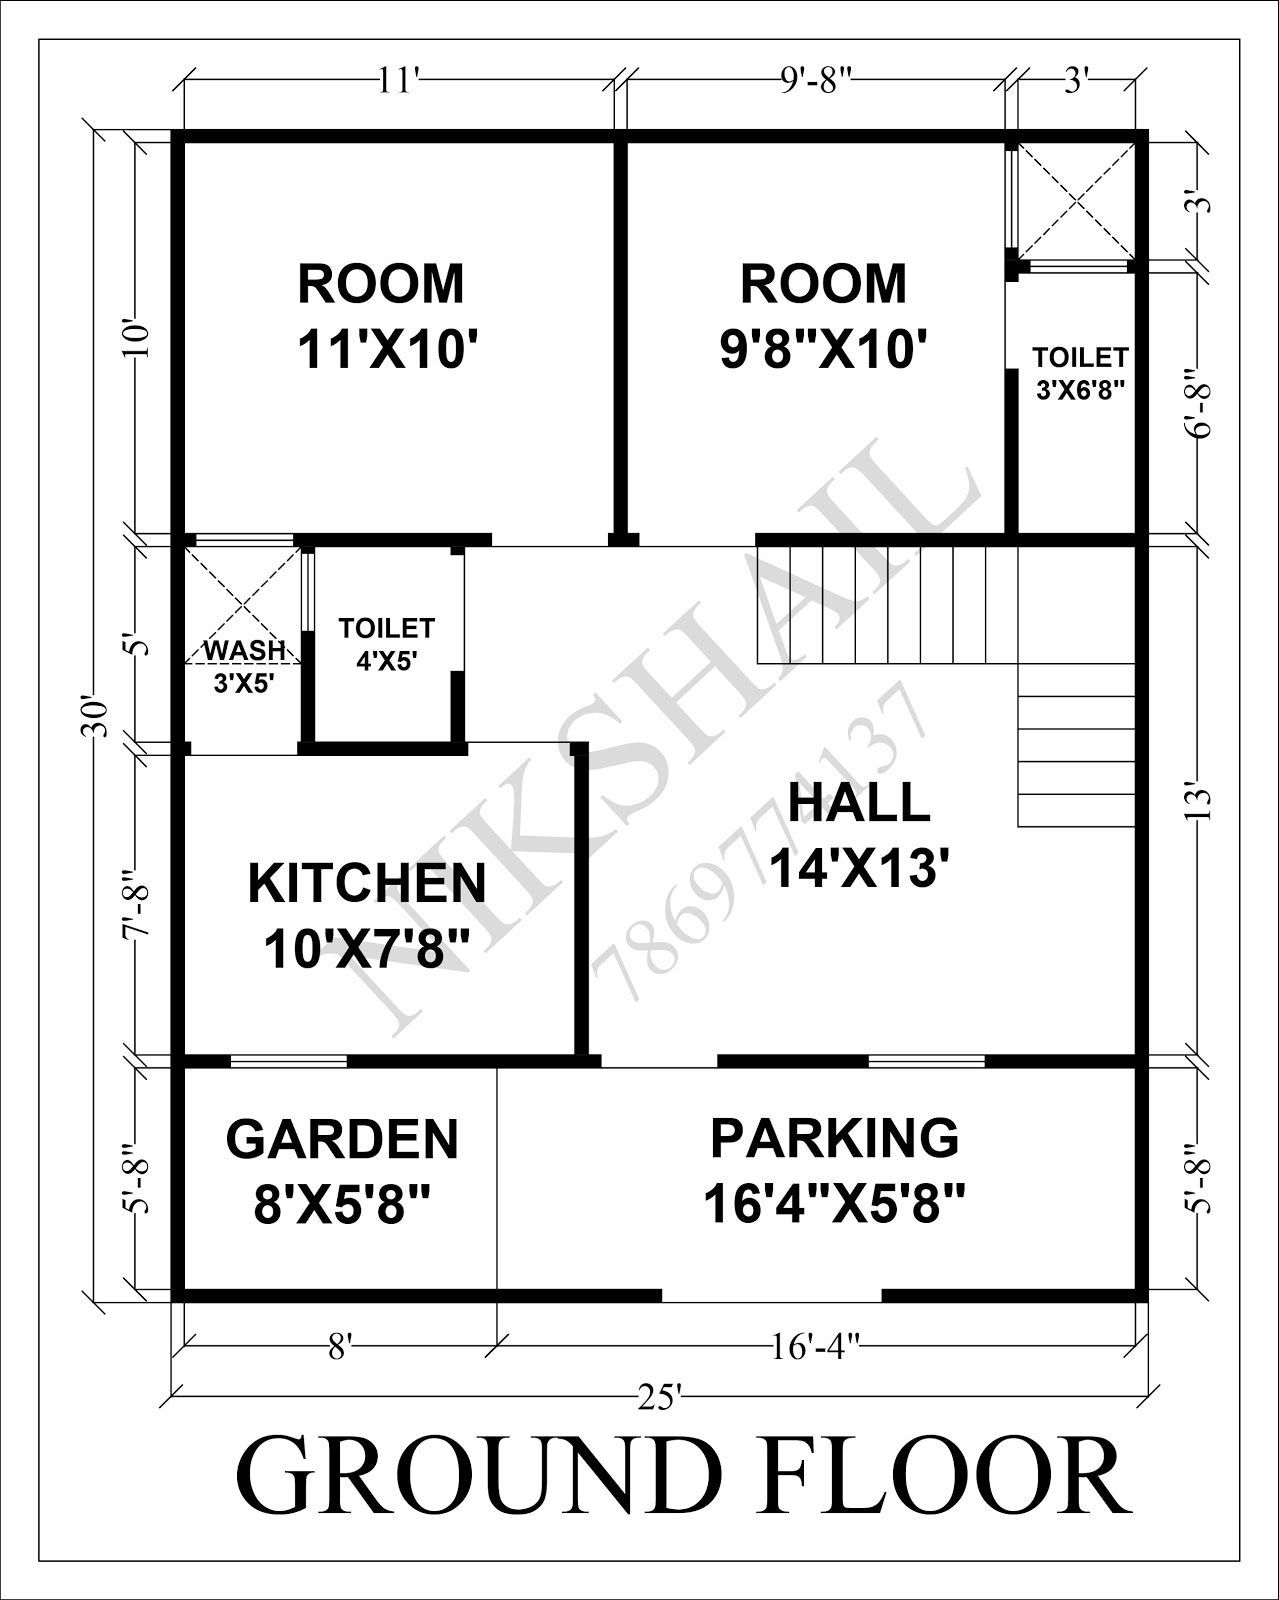 house plans 25 x 30 - Google Search in 2020 | 2bhk house ...